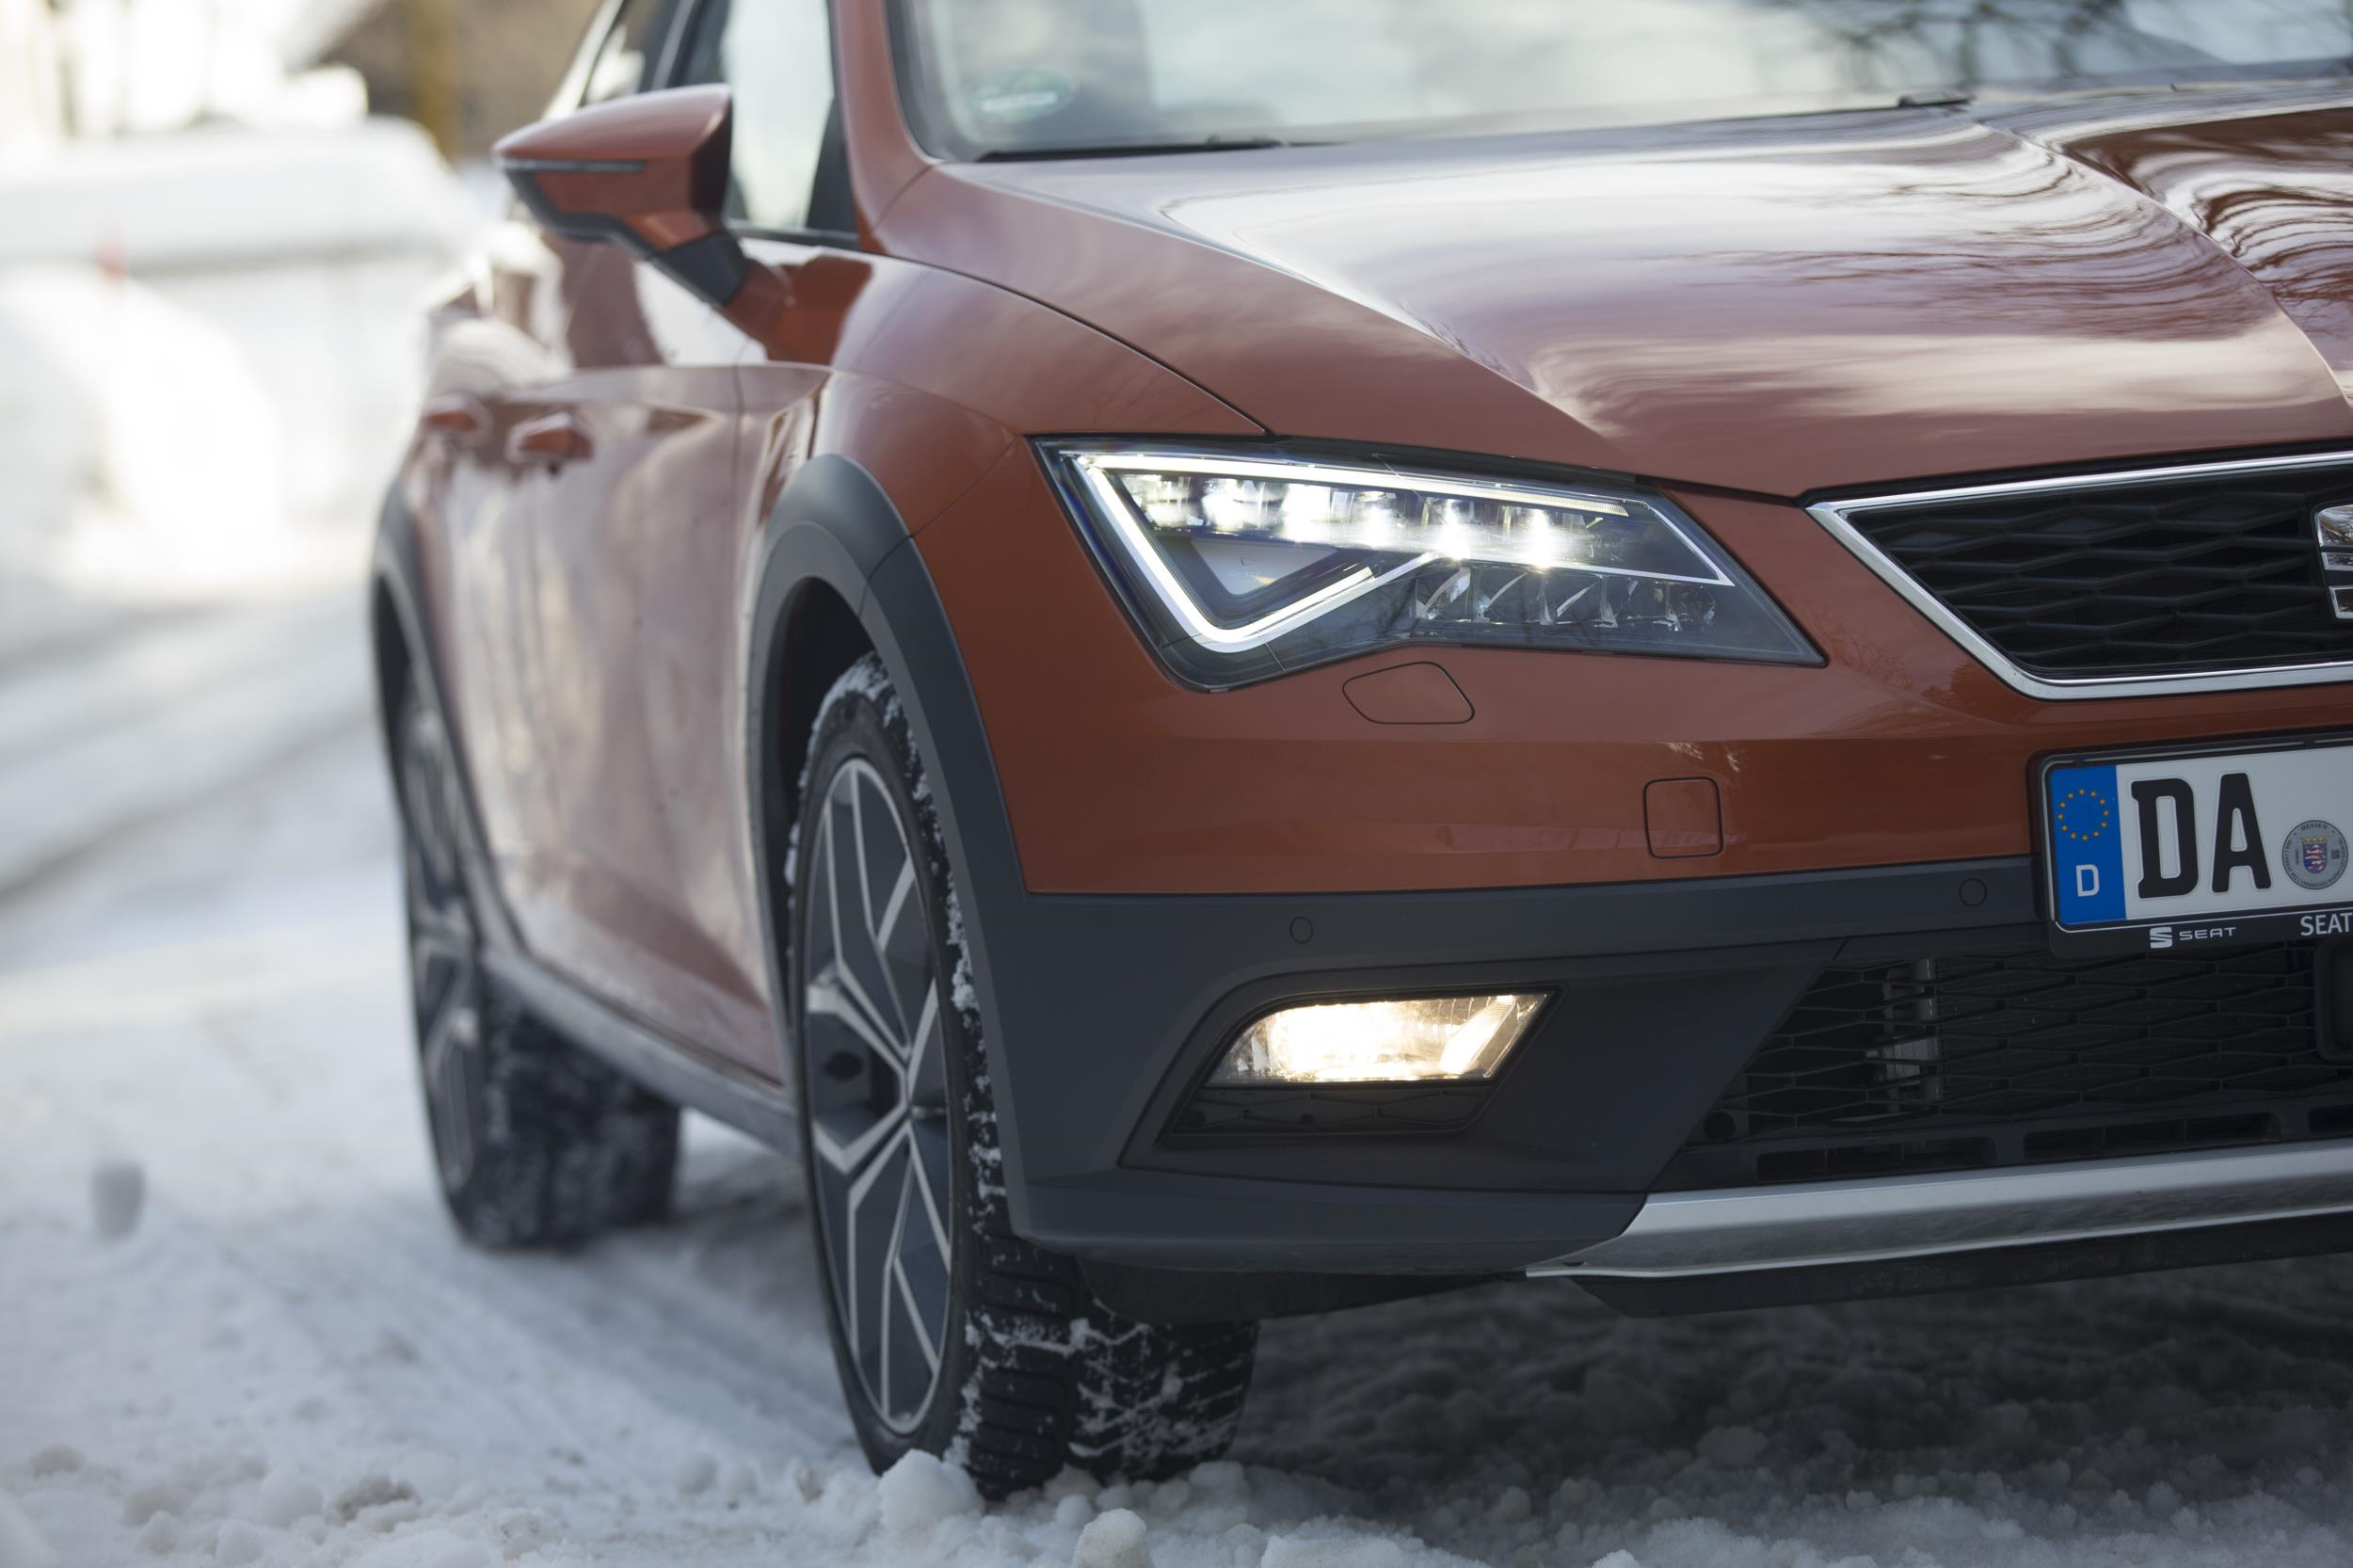 Safe driving in the snow is possible - Motor Source Group